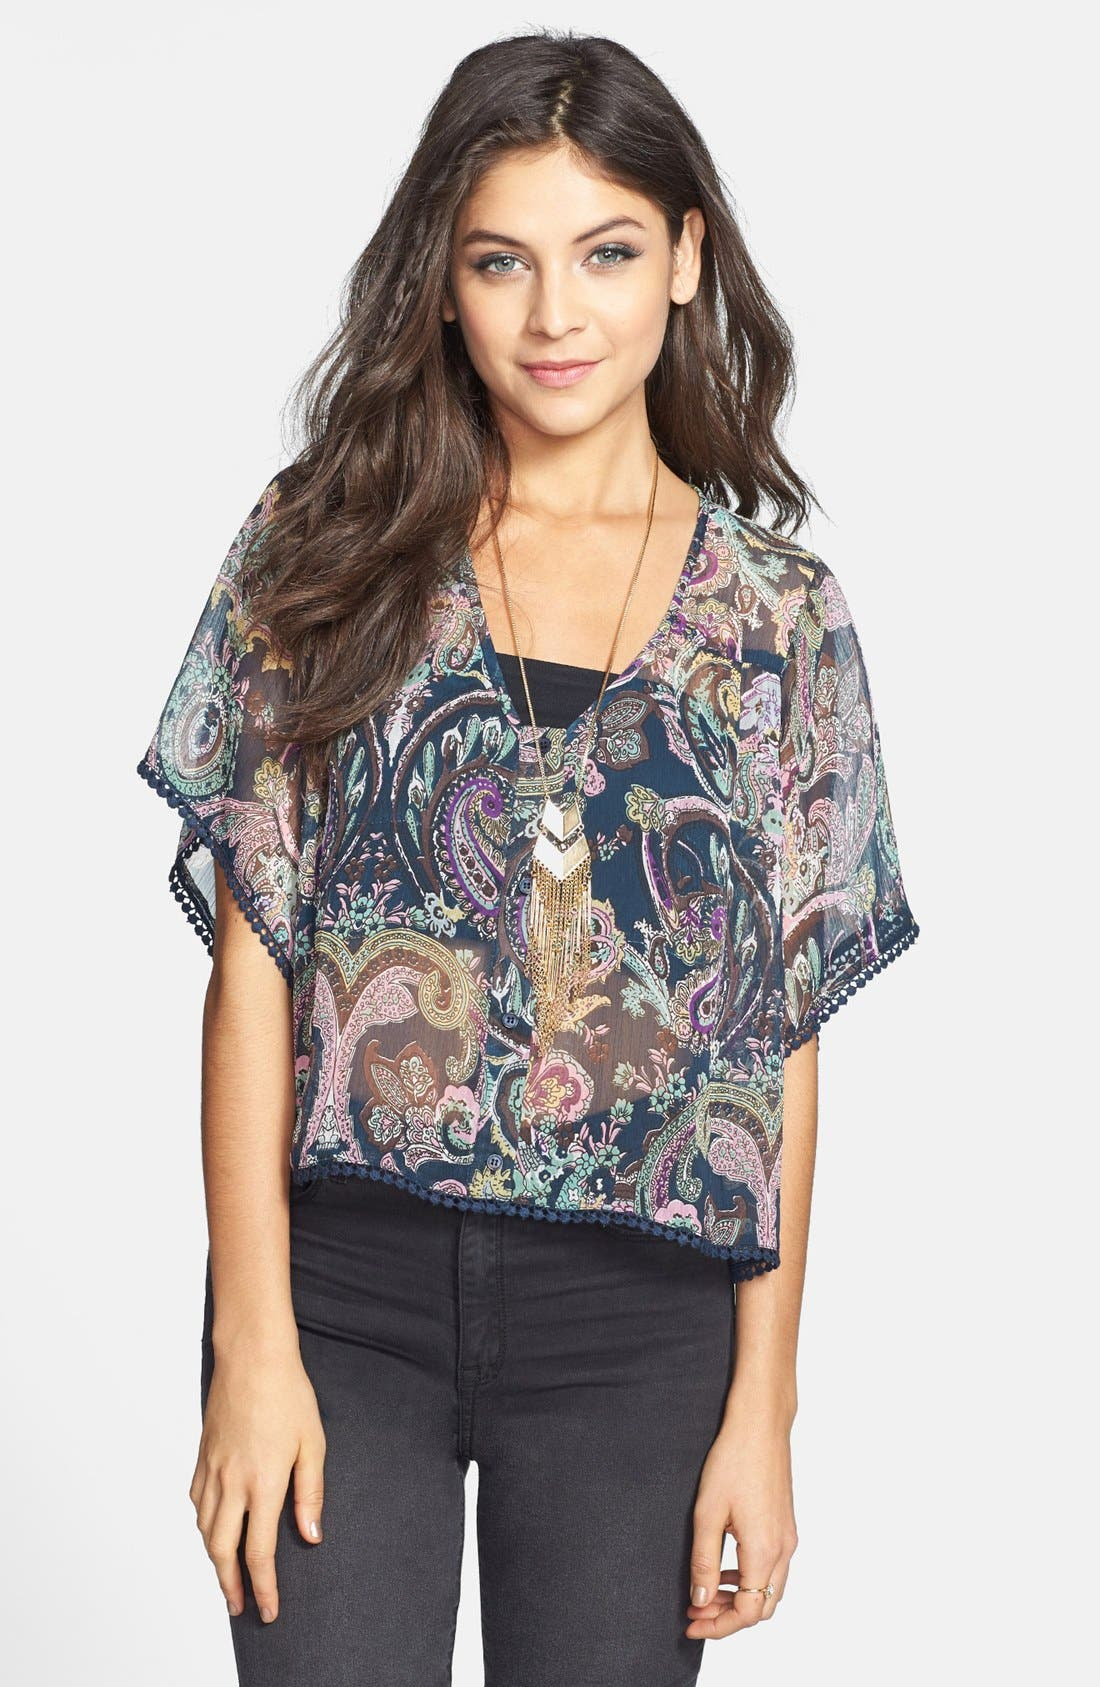 Main Image - Band of Gypsies Crochet Trim Print Chiffon Top (Juniors)